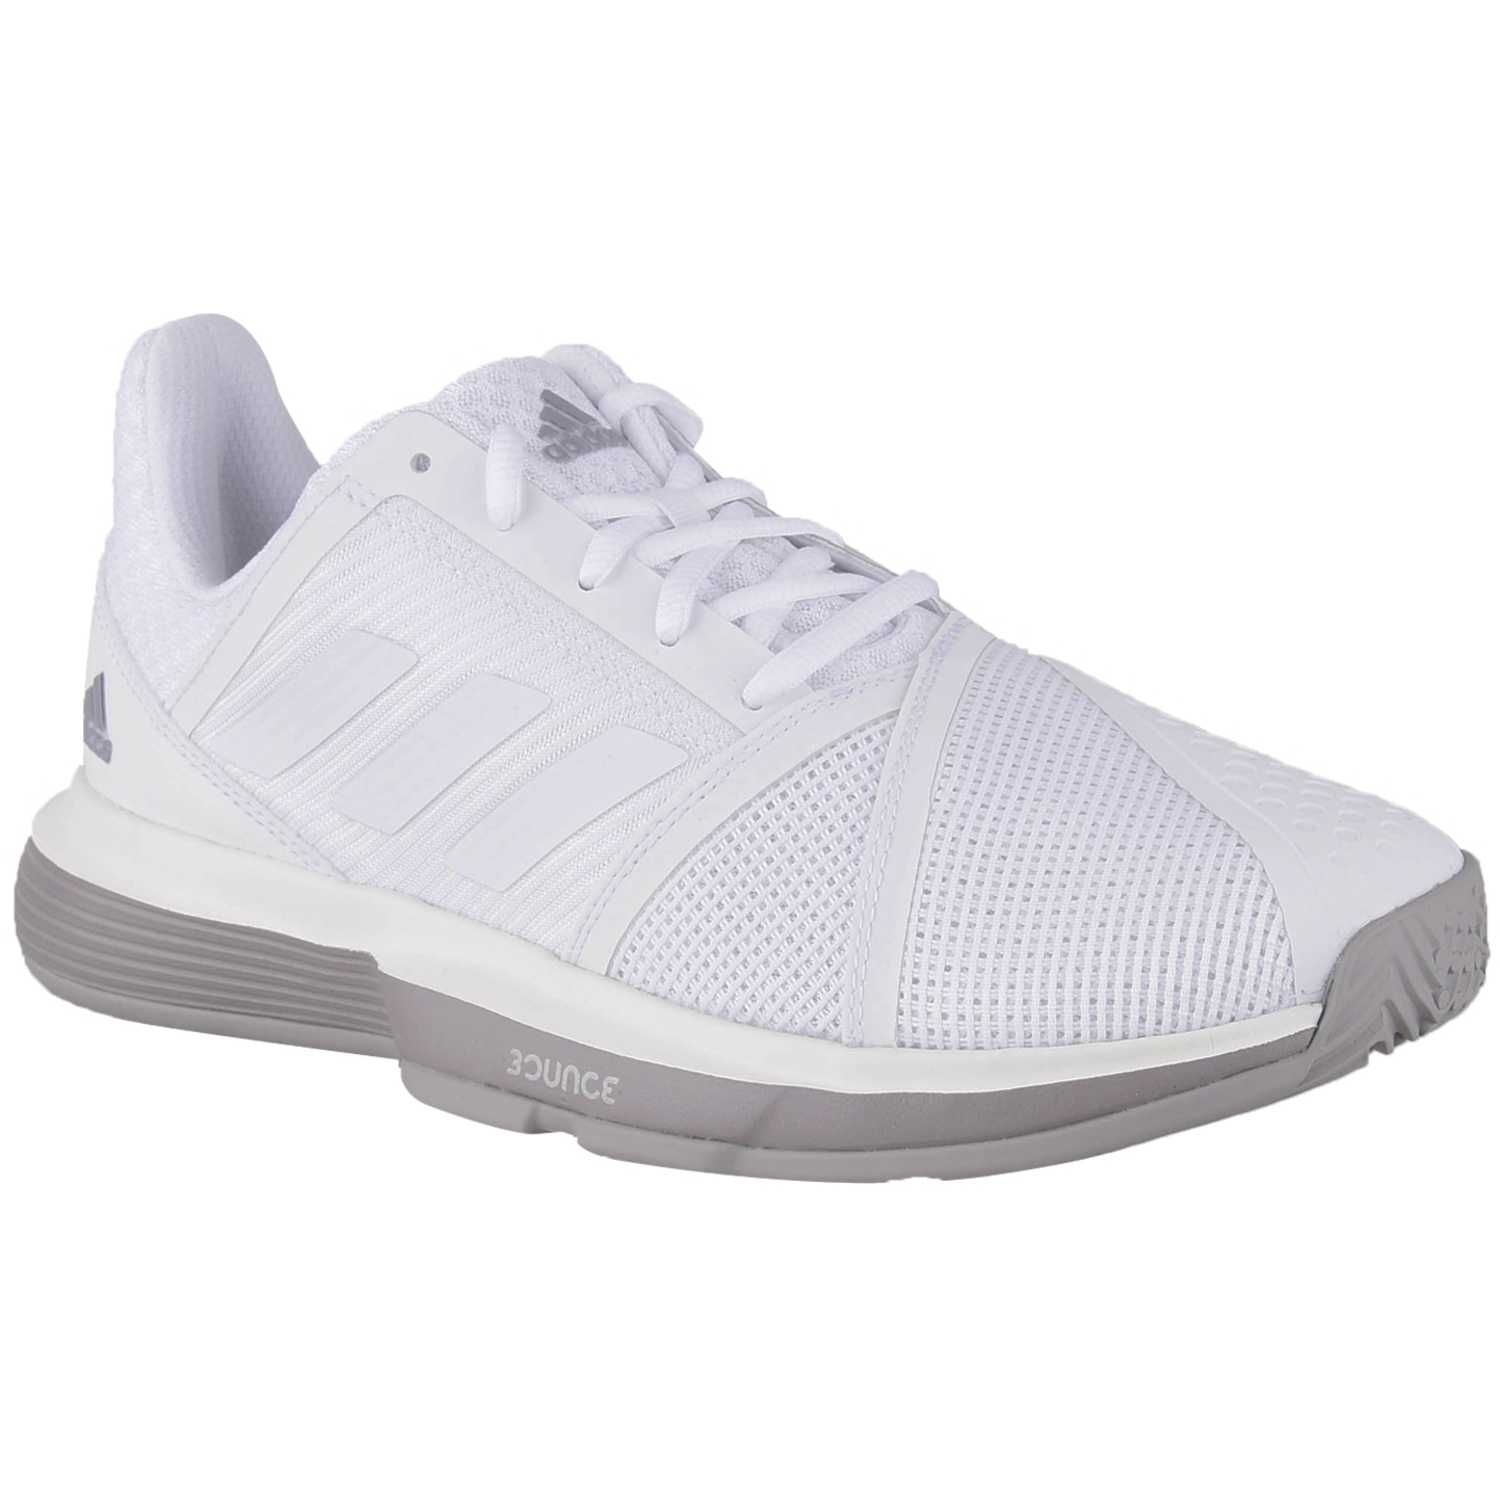 Adidas courtjam bounce w Blanco / gris Mujeres